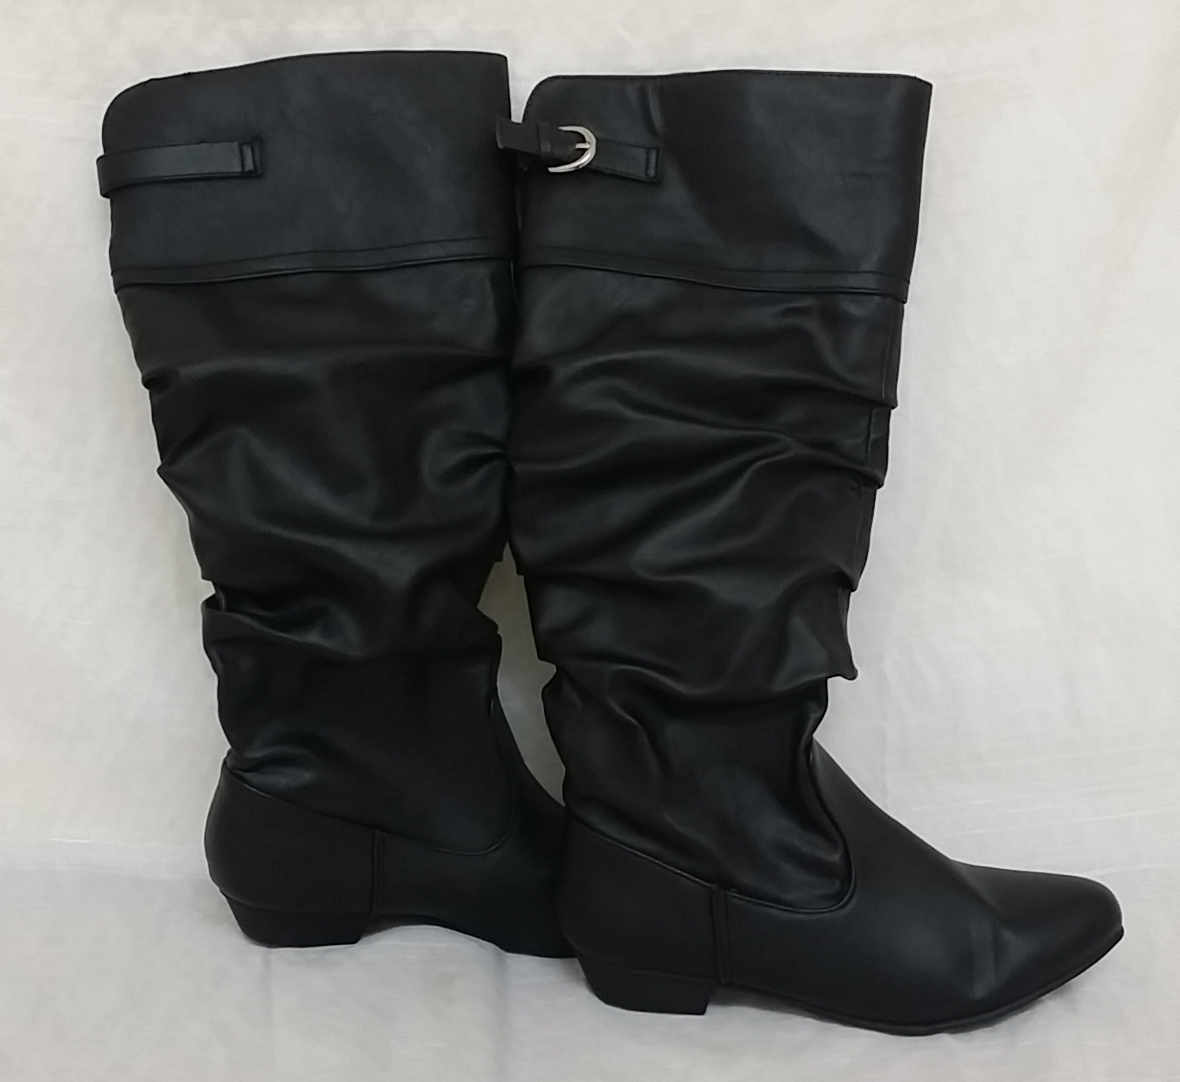 New! Women's CAWINNI Tall Dress Boots with Buckle in Black 67264 E25